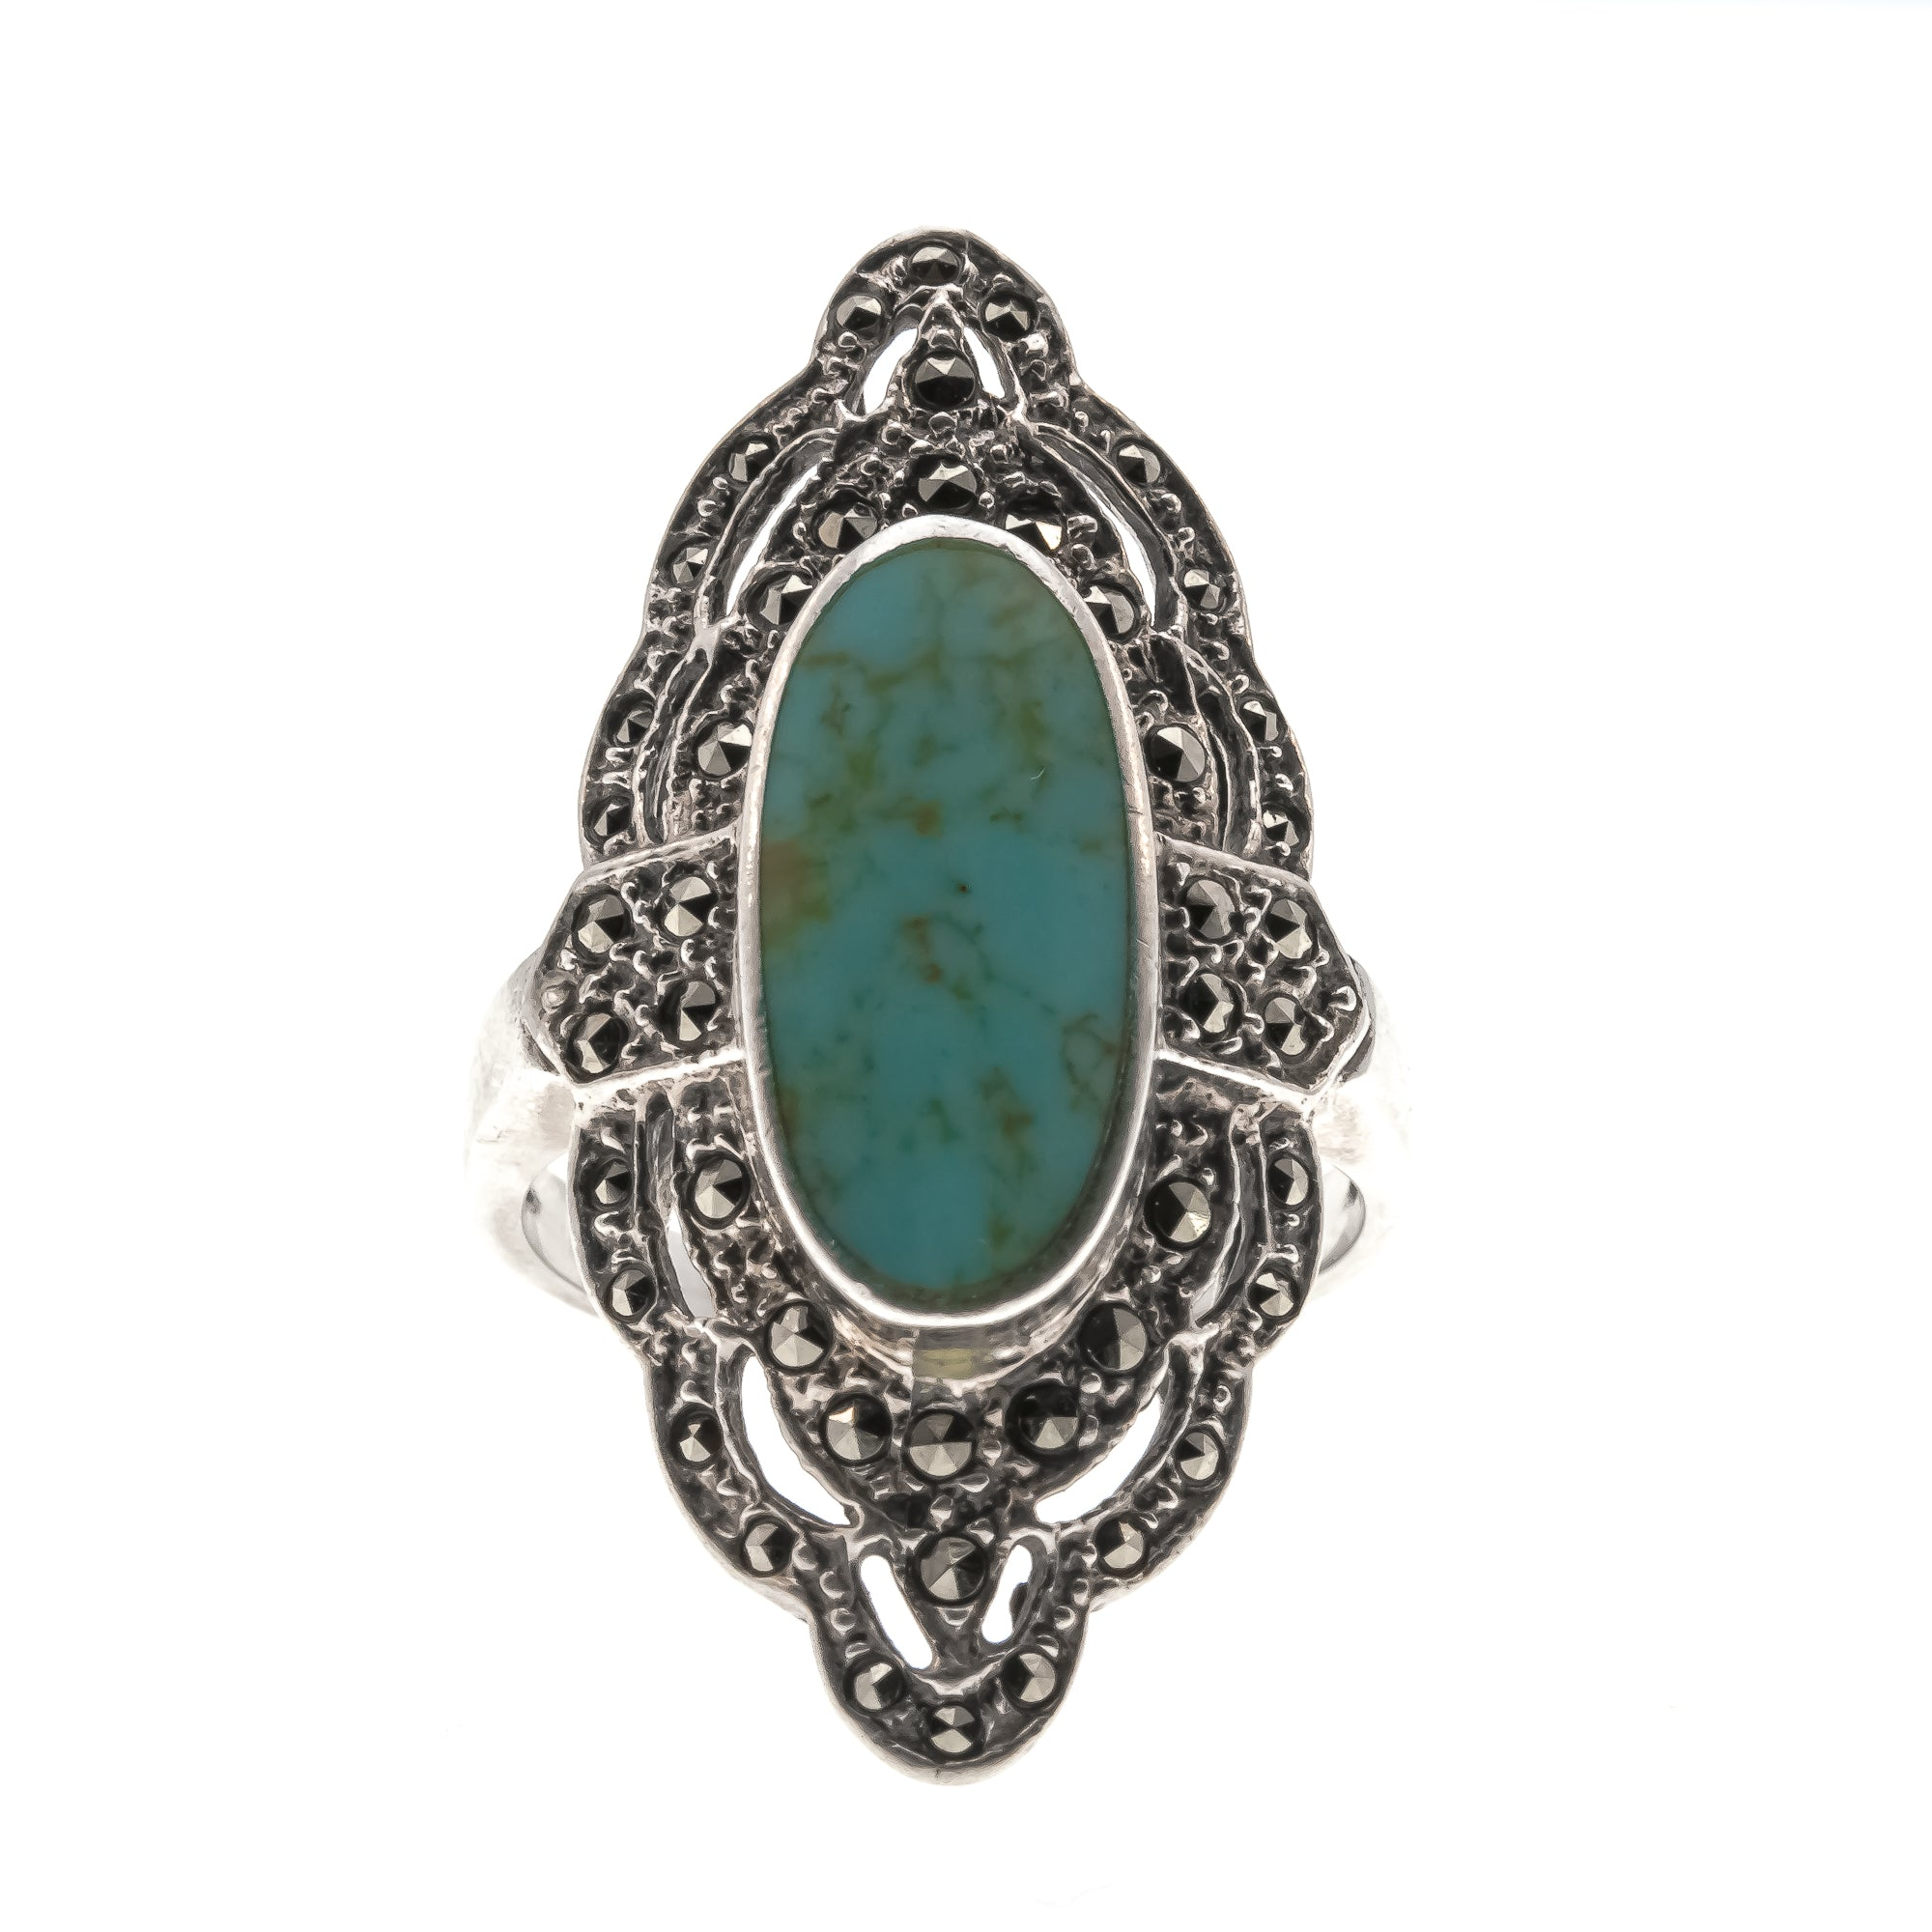 Glistening Sea - Vintage Sterling Silver Turquoise & Marcasite Ring (VR434)